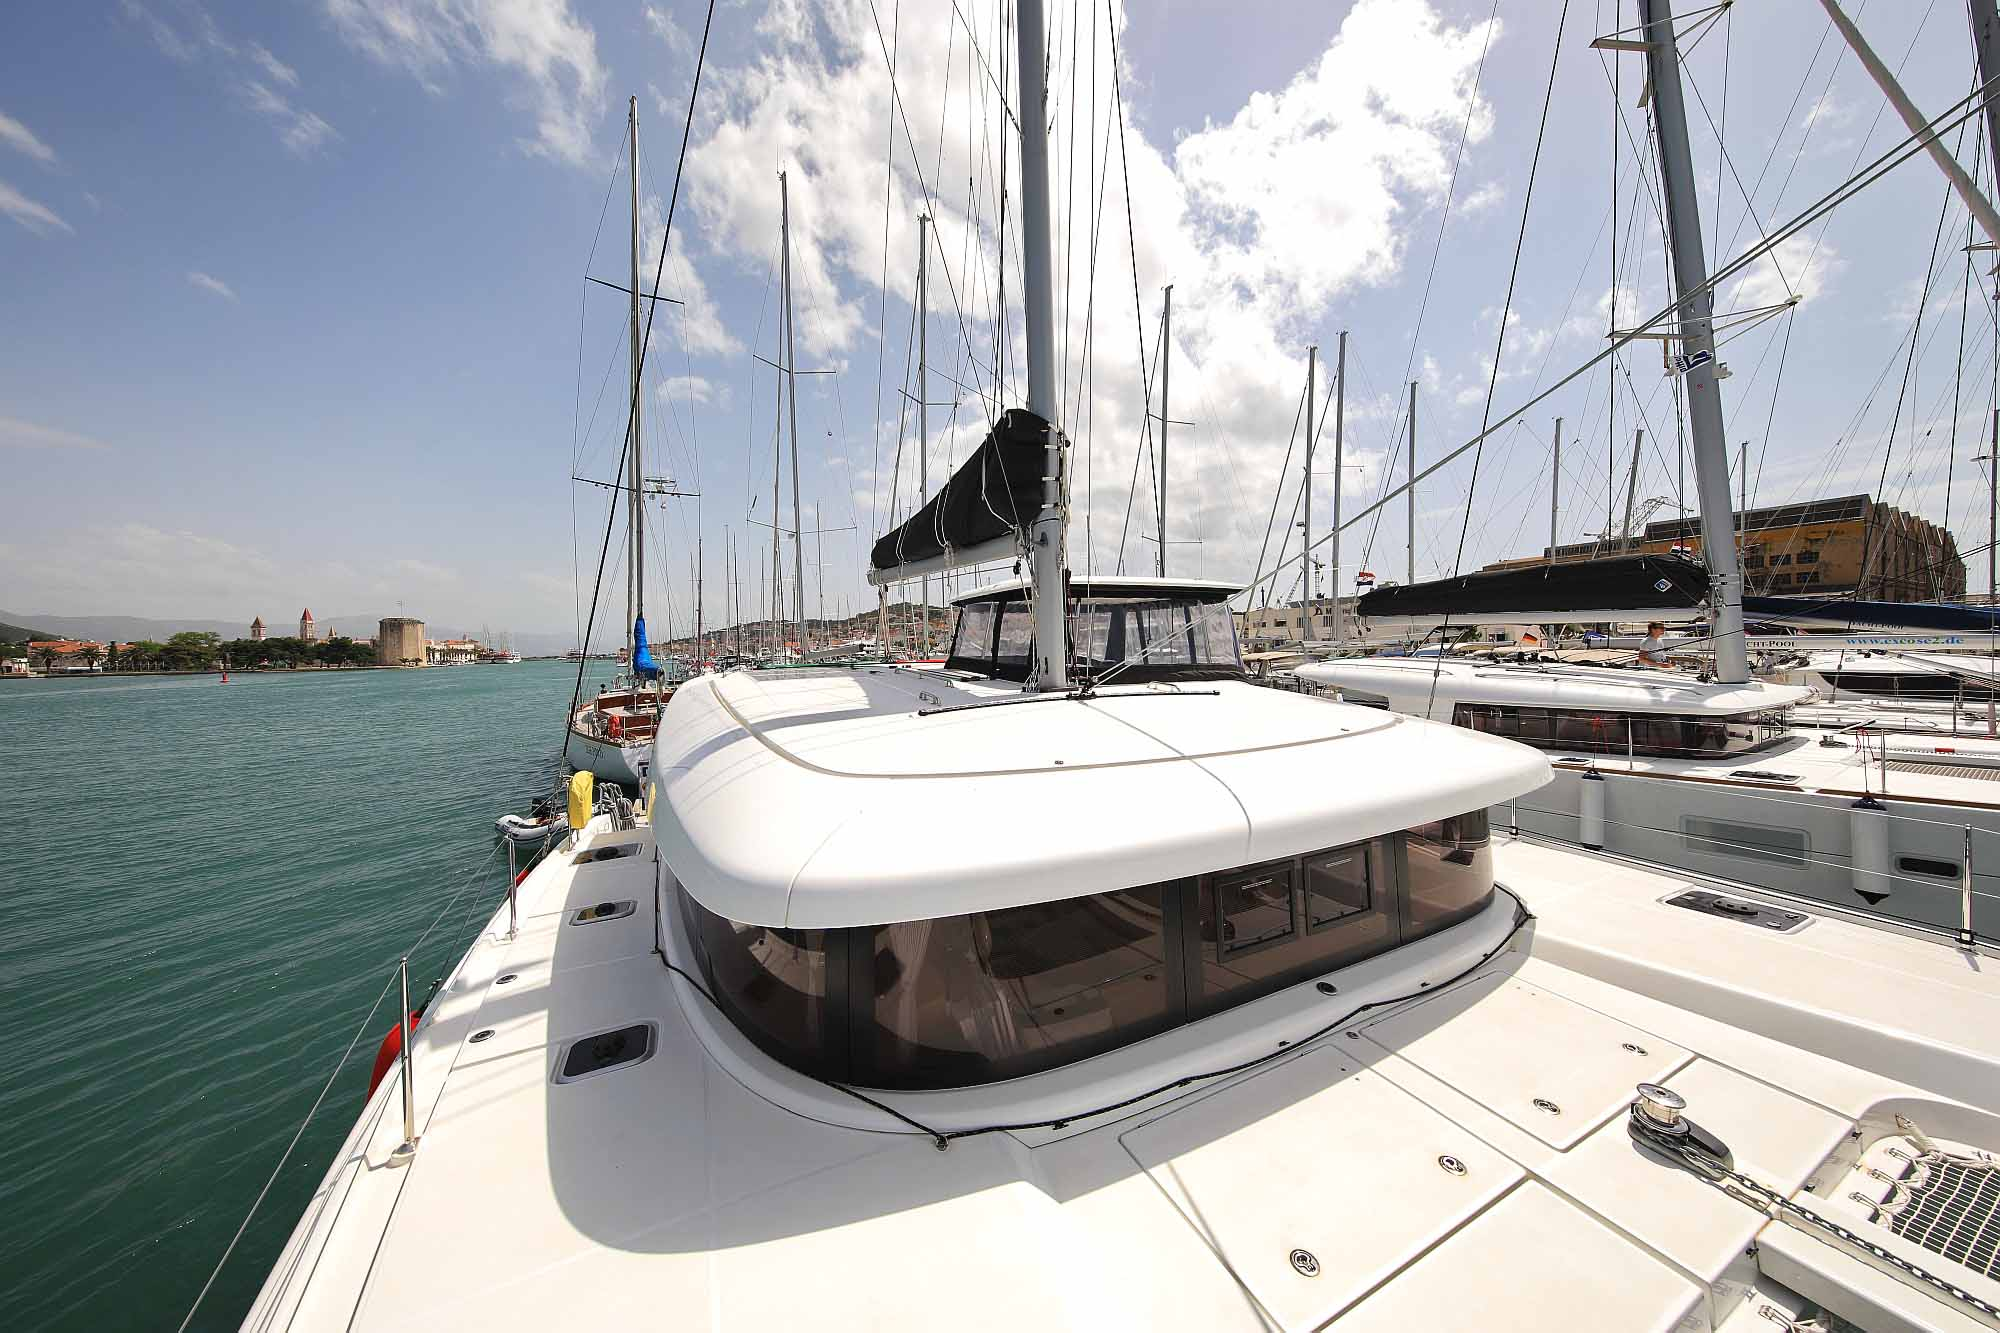 Catamaran Lagoon 42: Ready of booking catamaran training, skipper training, harbor maneuver + docking training